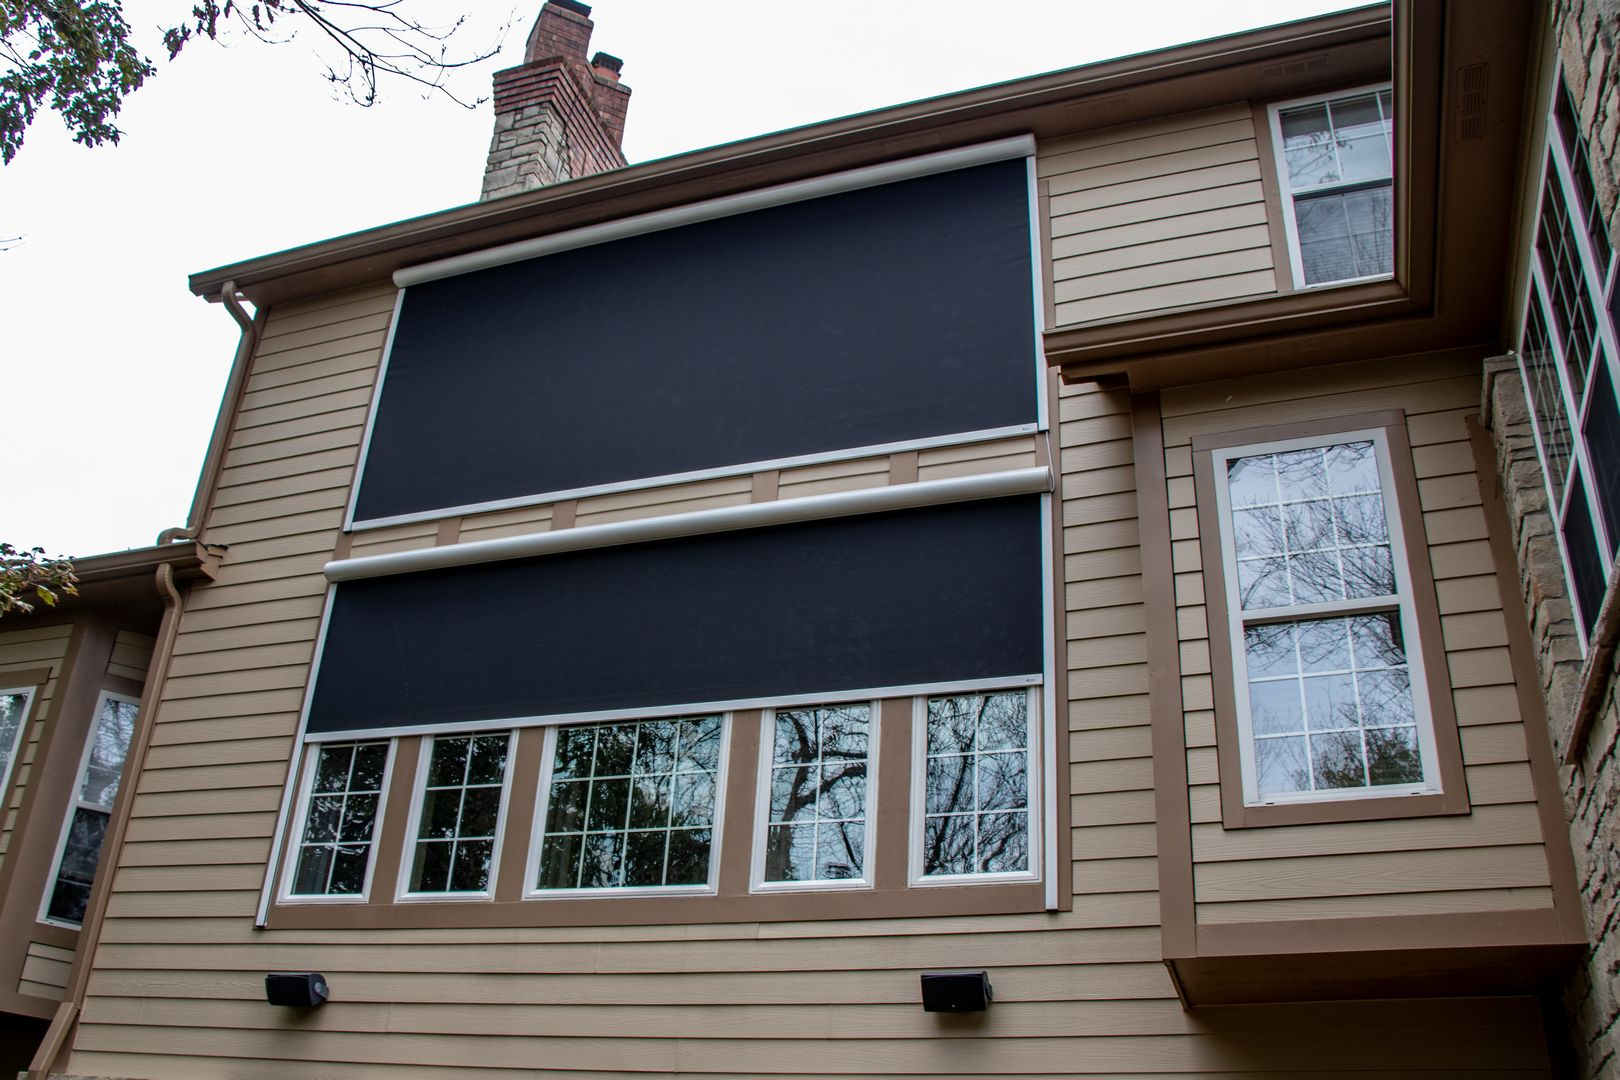 Retractable solar screen wall added on to large windows to block/protect the home from the west sun